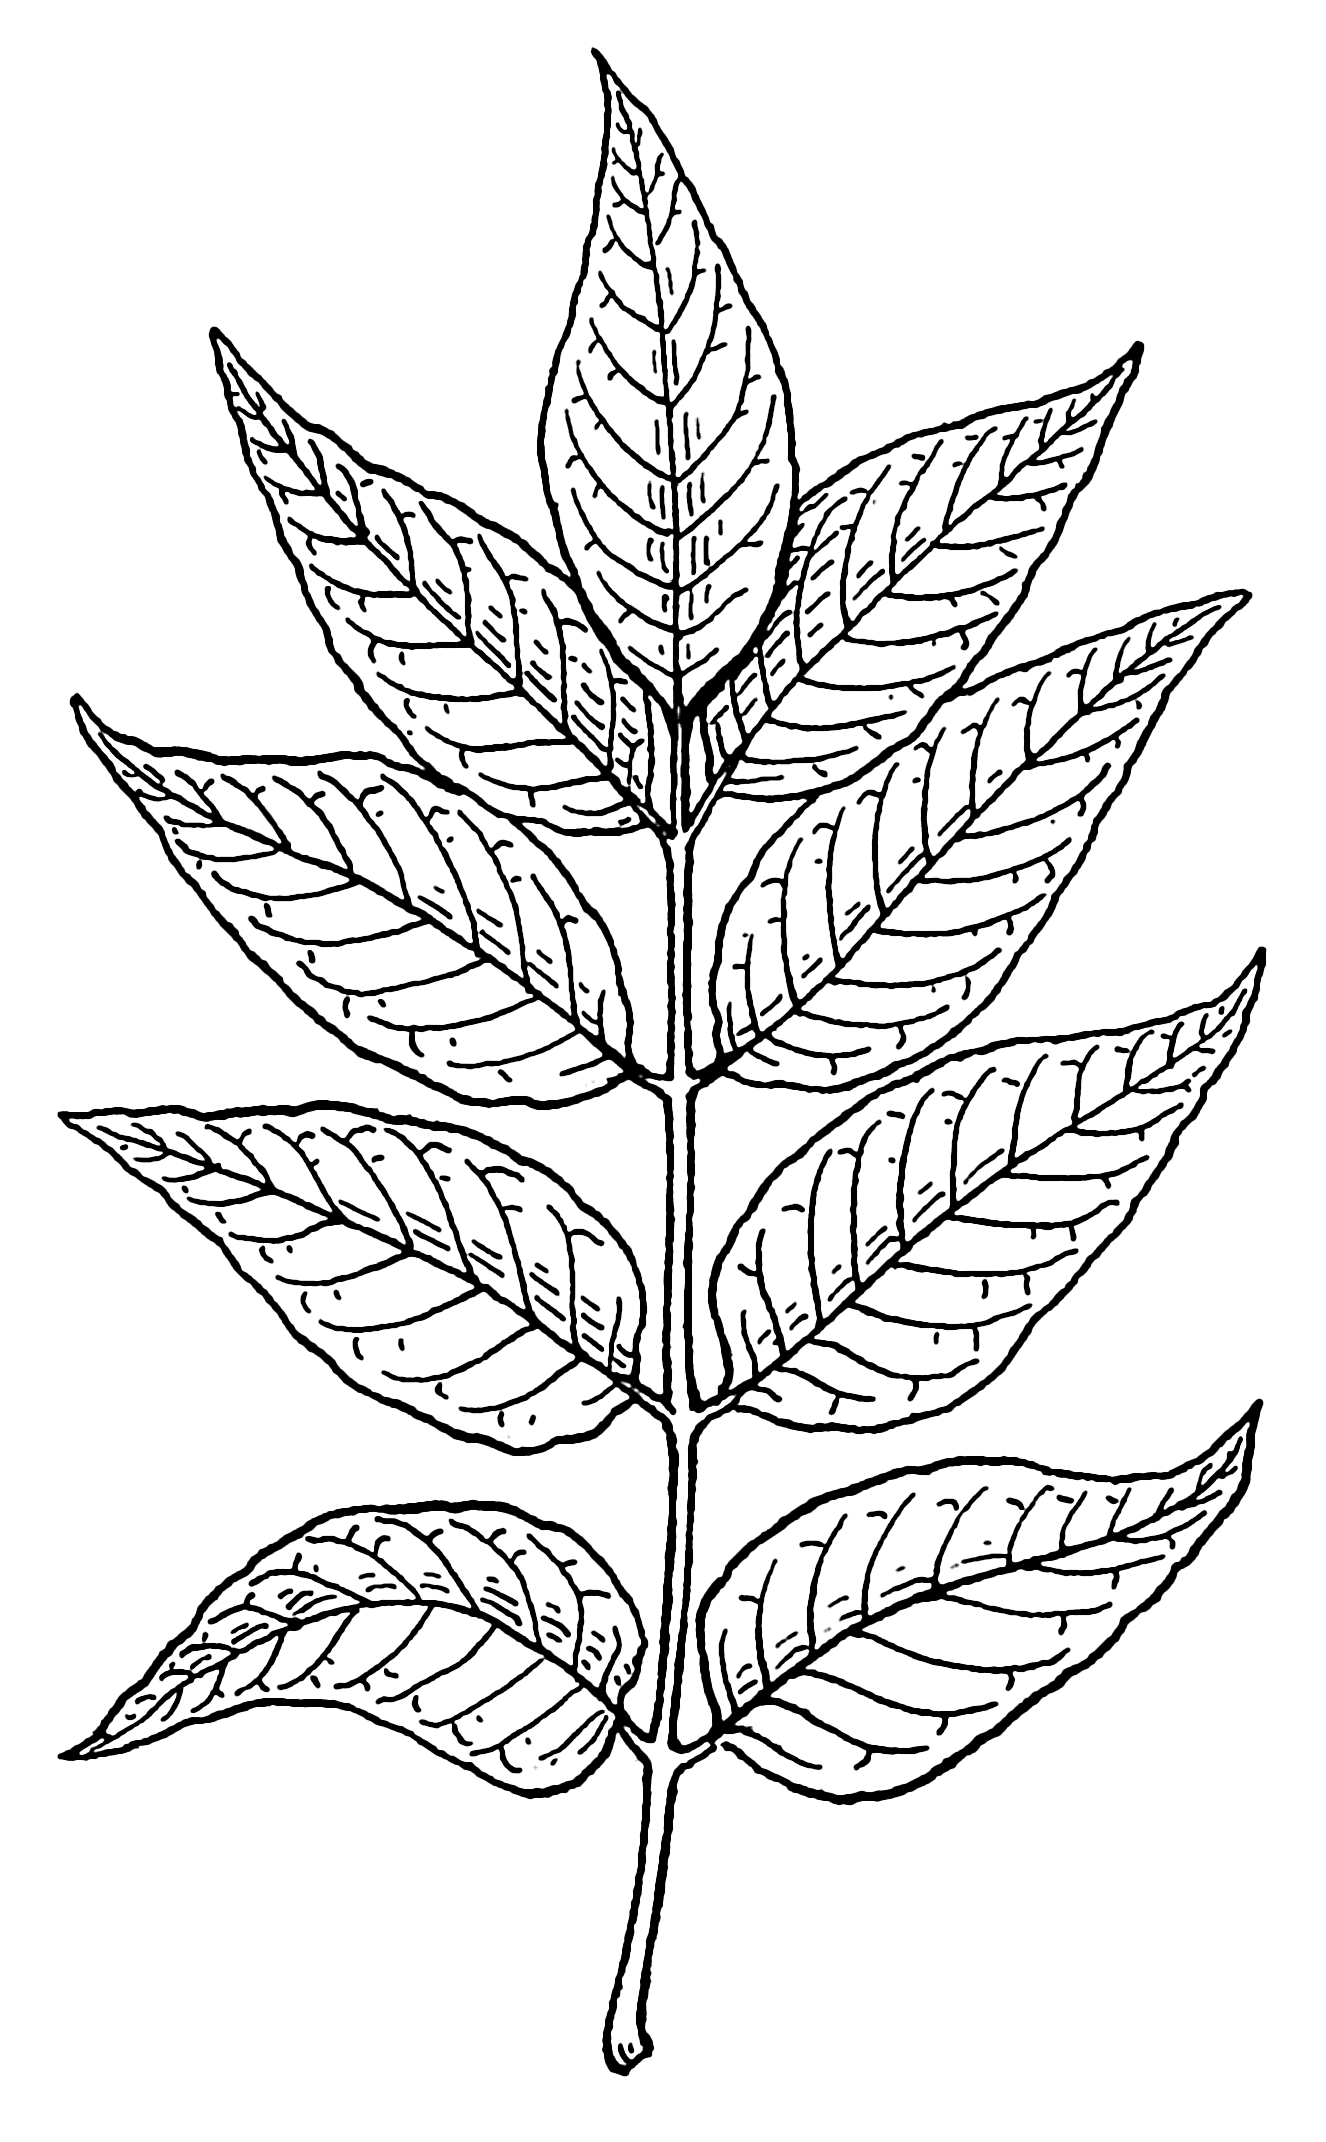 Drawings Of Leaves Sketches